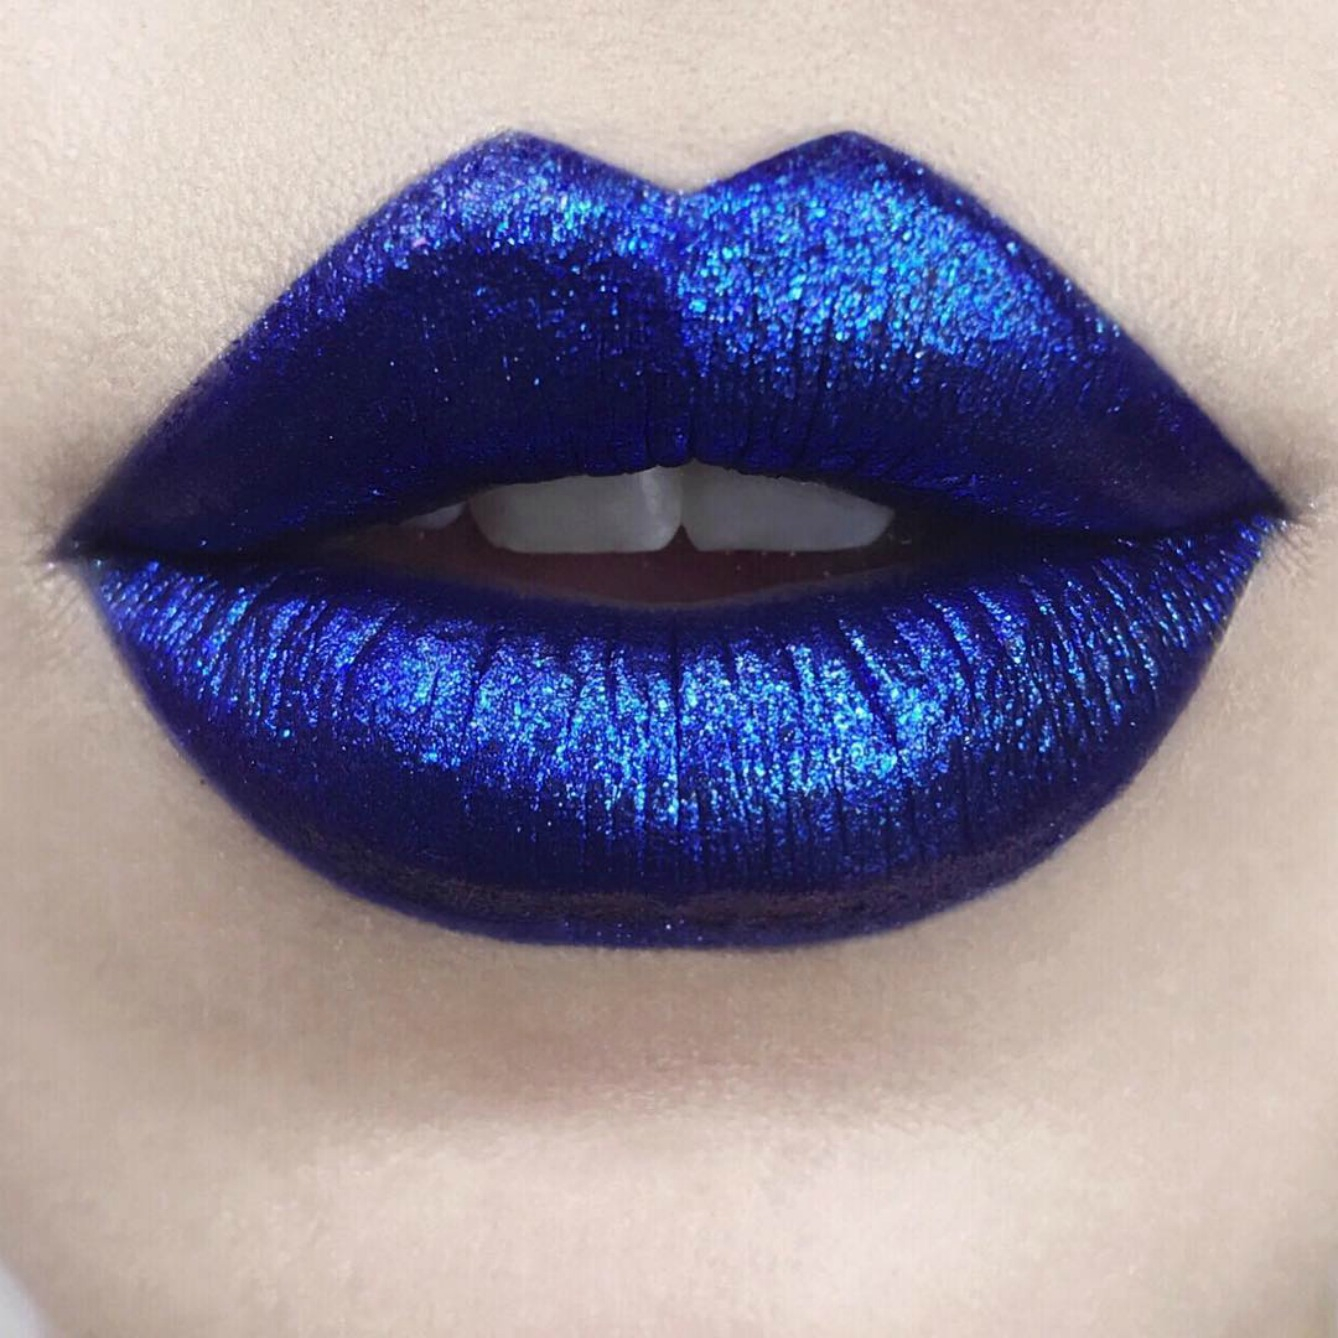 You Can Pre-Order Kat Von D's New Glimmer Lipstick